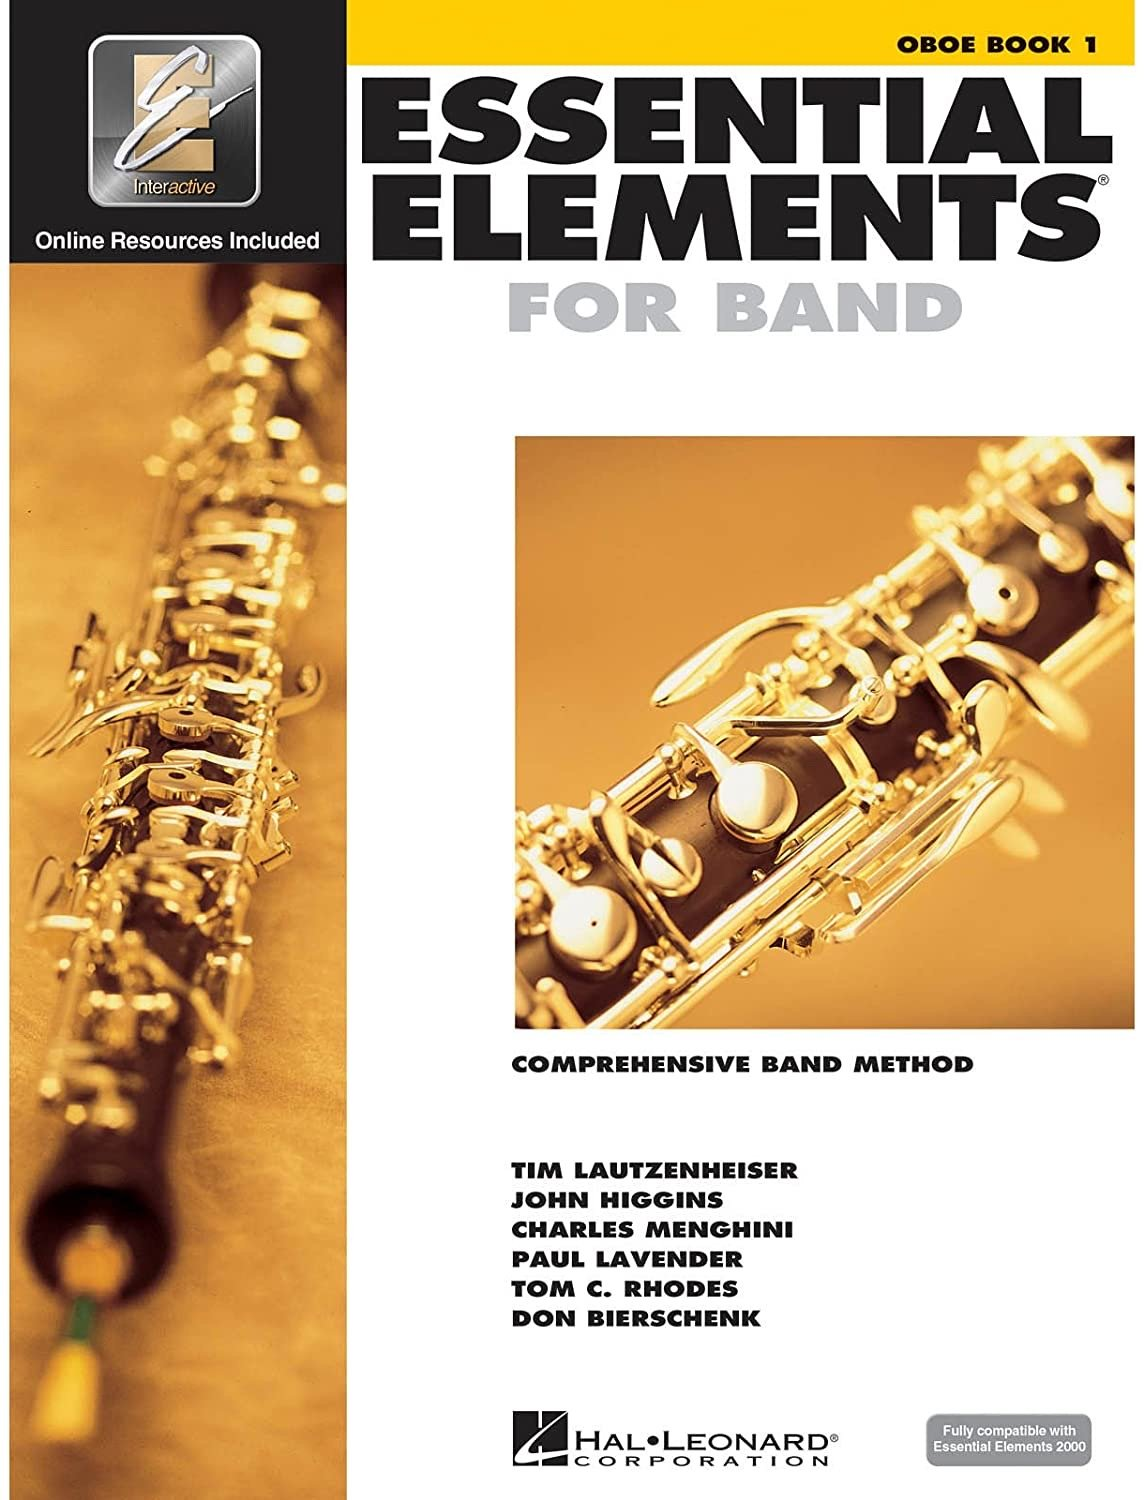 Essential Elements for Band: Book 1 - Oboe